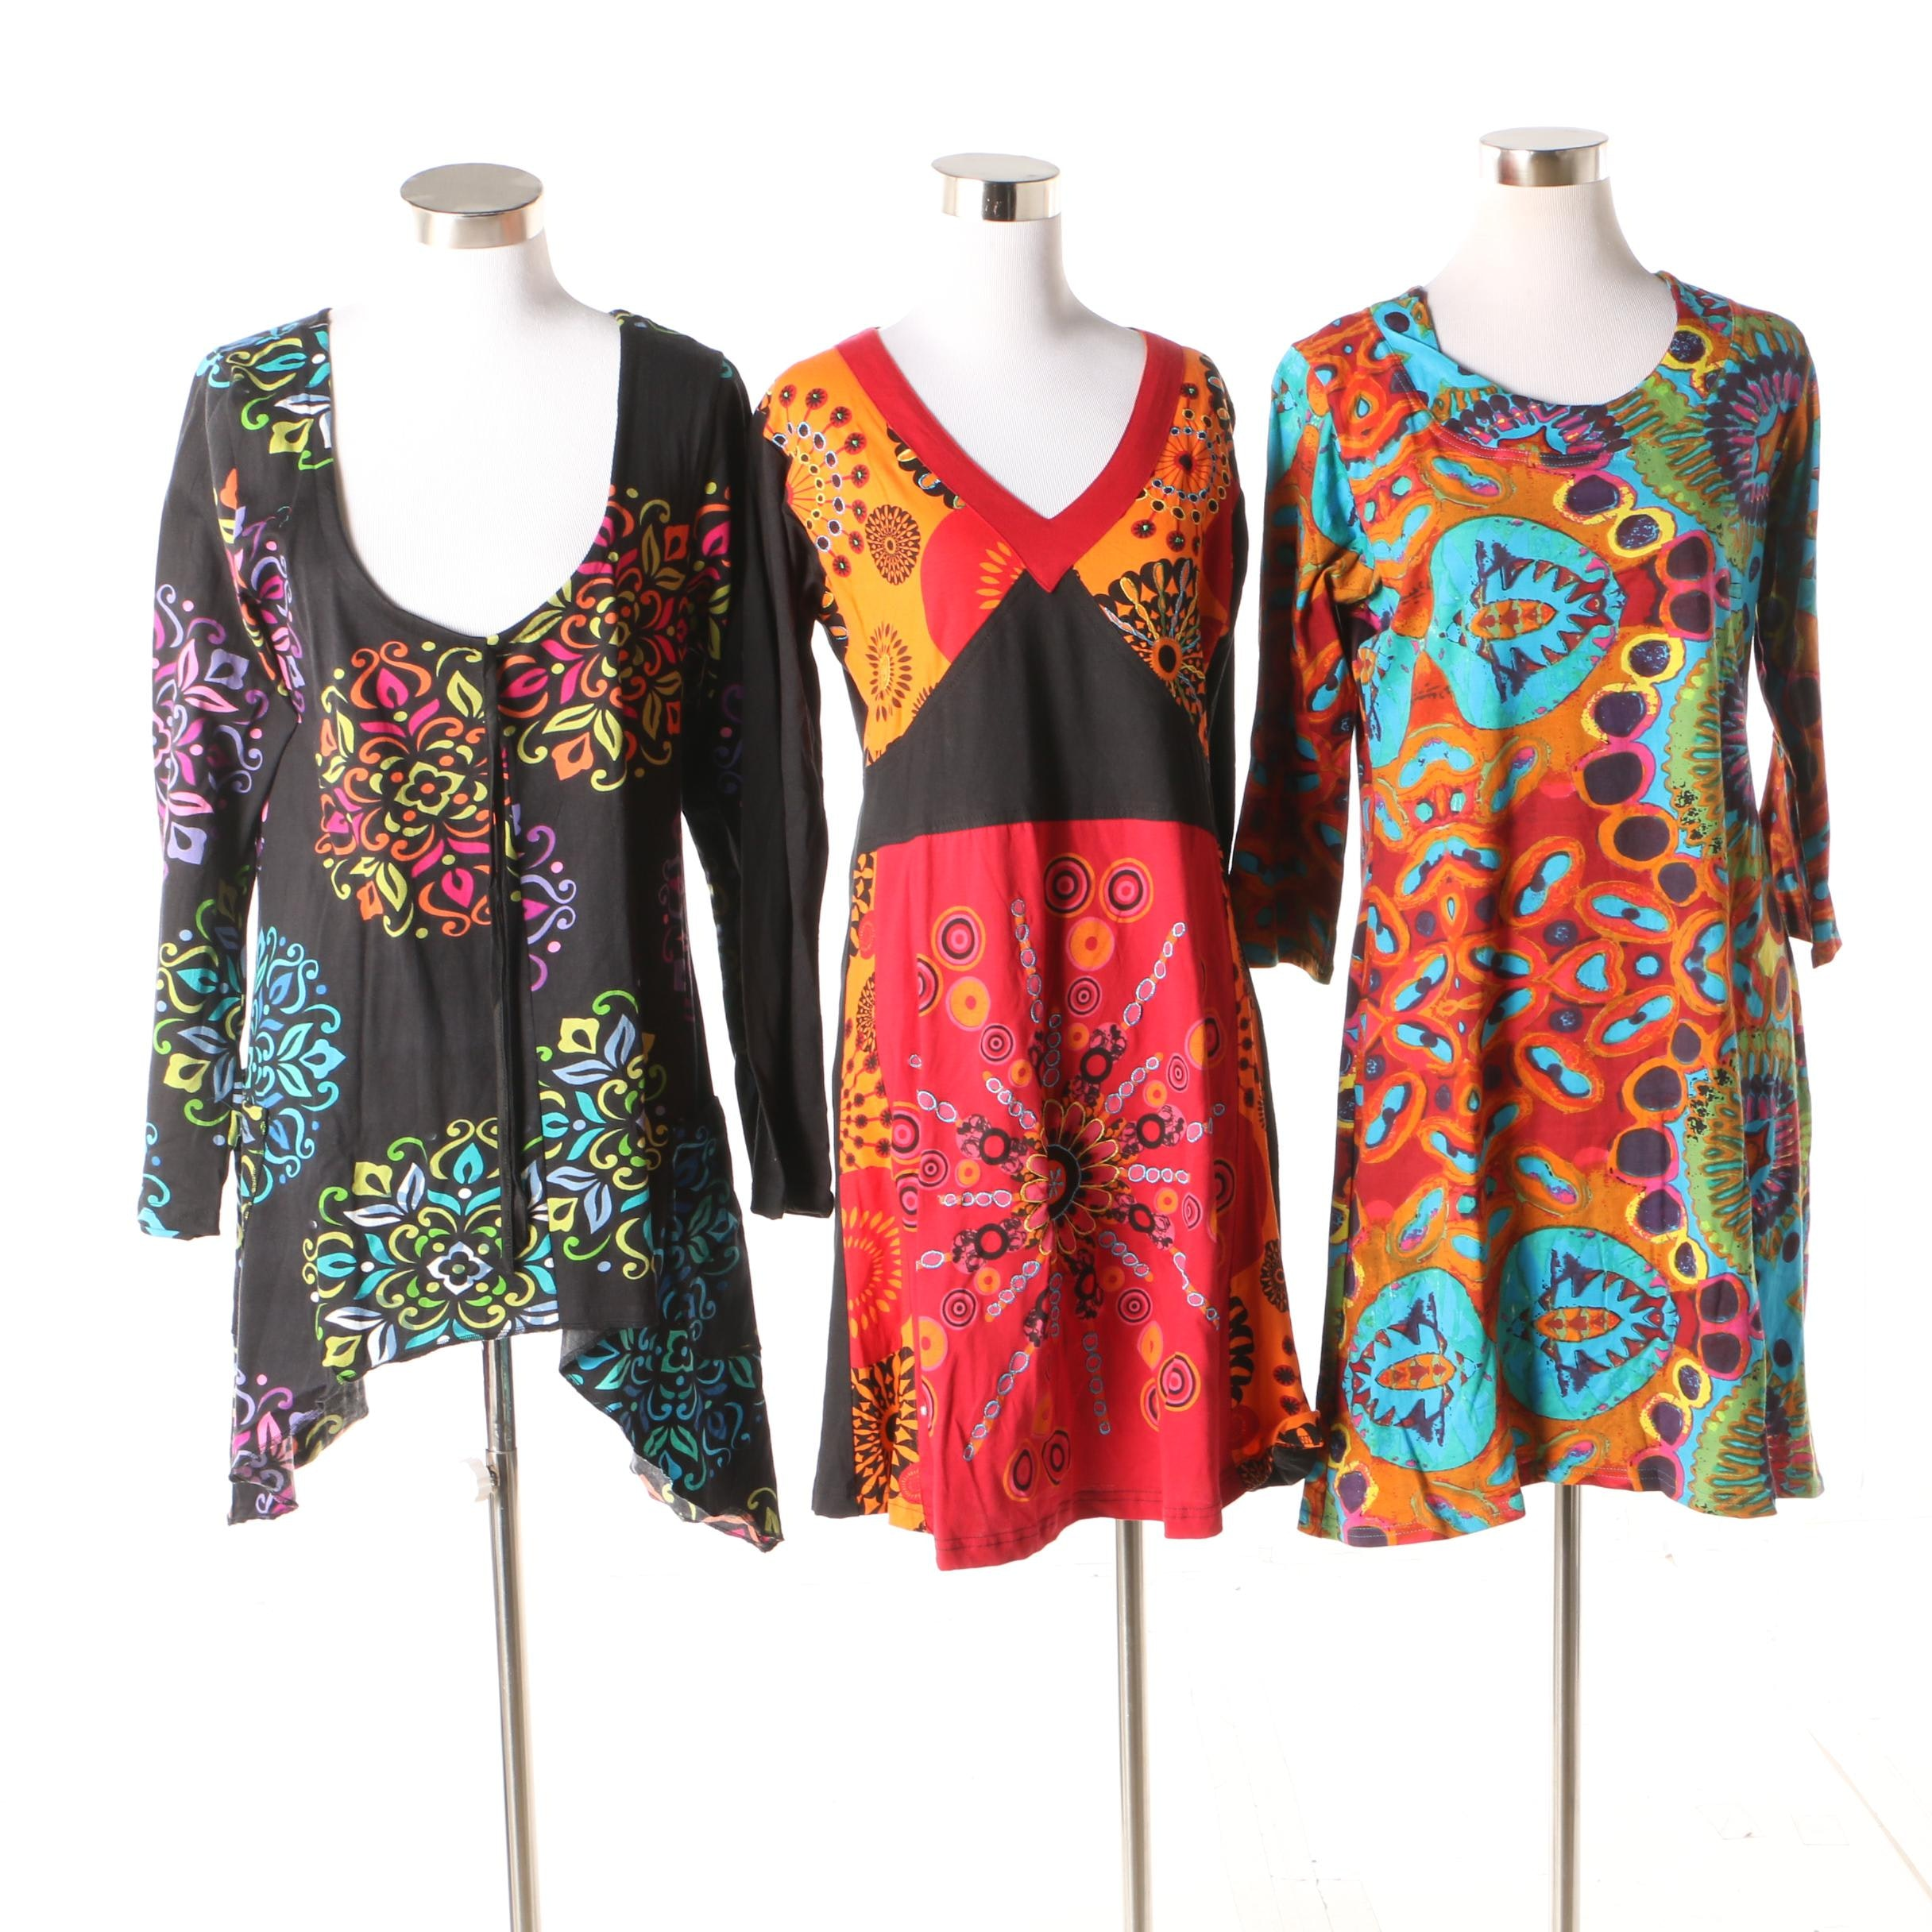 Aller Simplement Printed Cotton Tunics